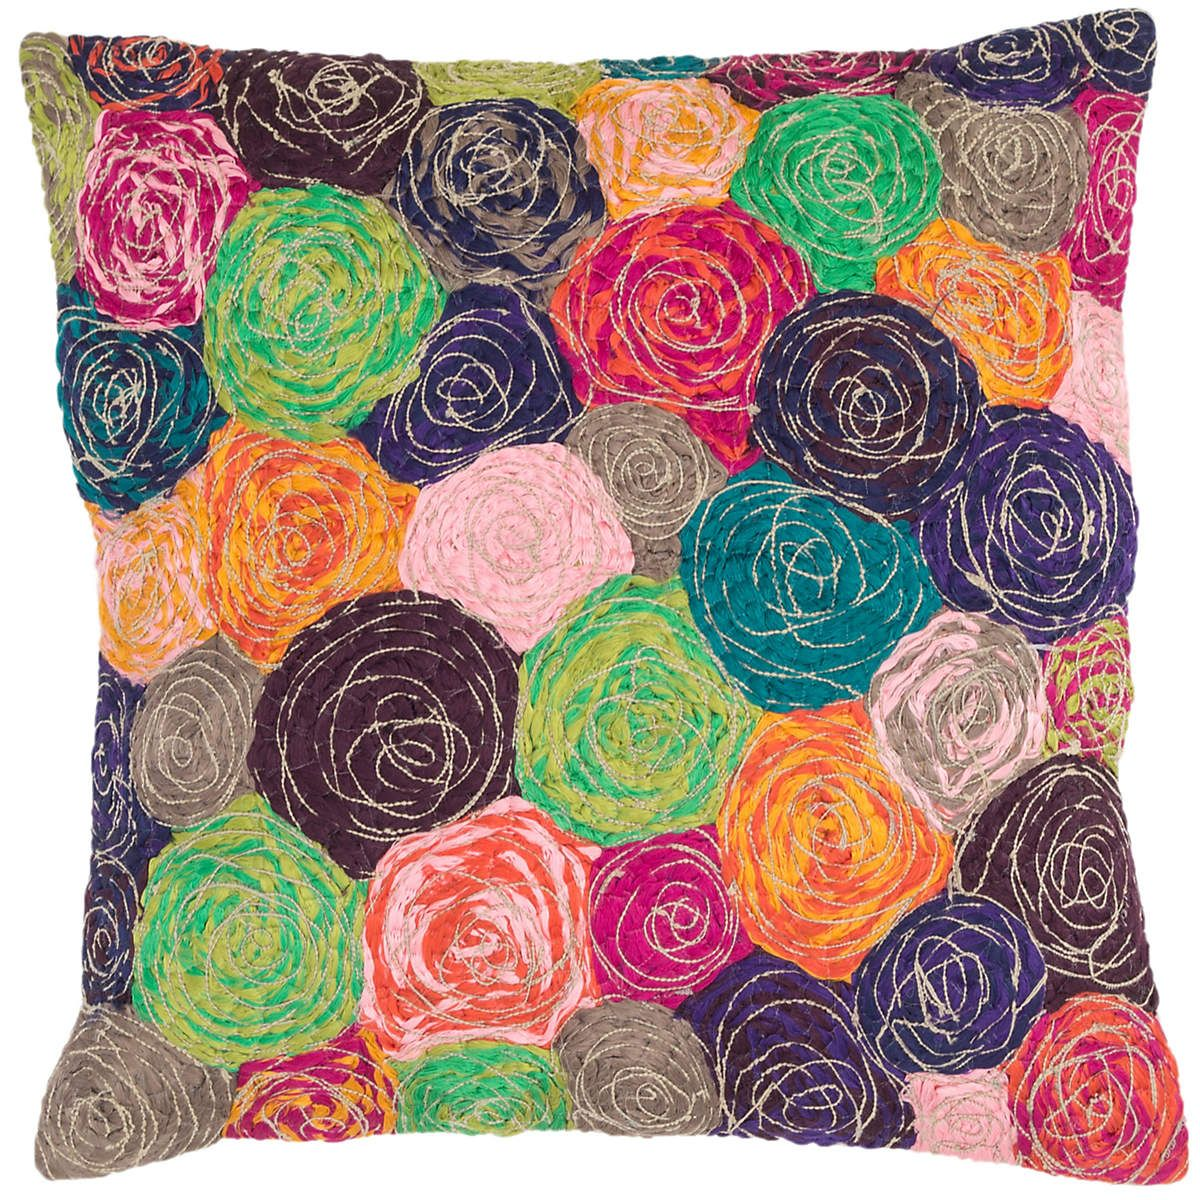 Another of our textile works of art from our bright bohemian